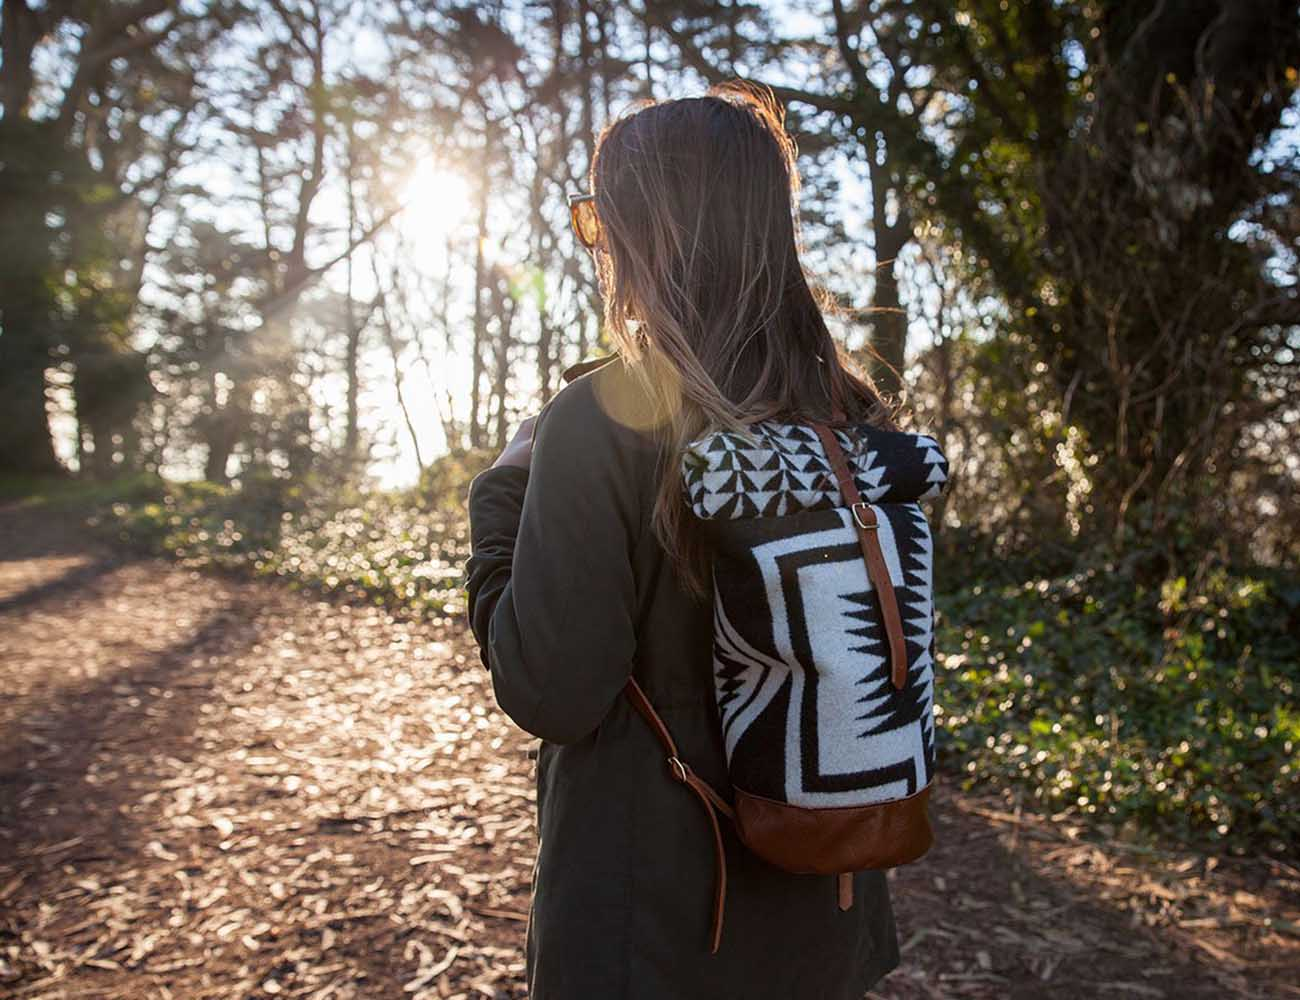 Walking Rock Rolltop Backpack by Future Glory Co.